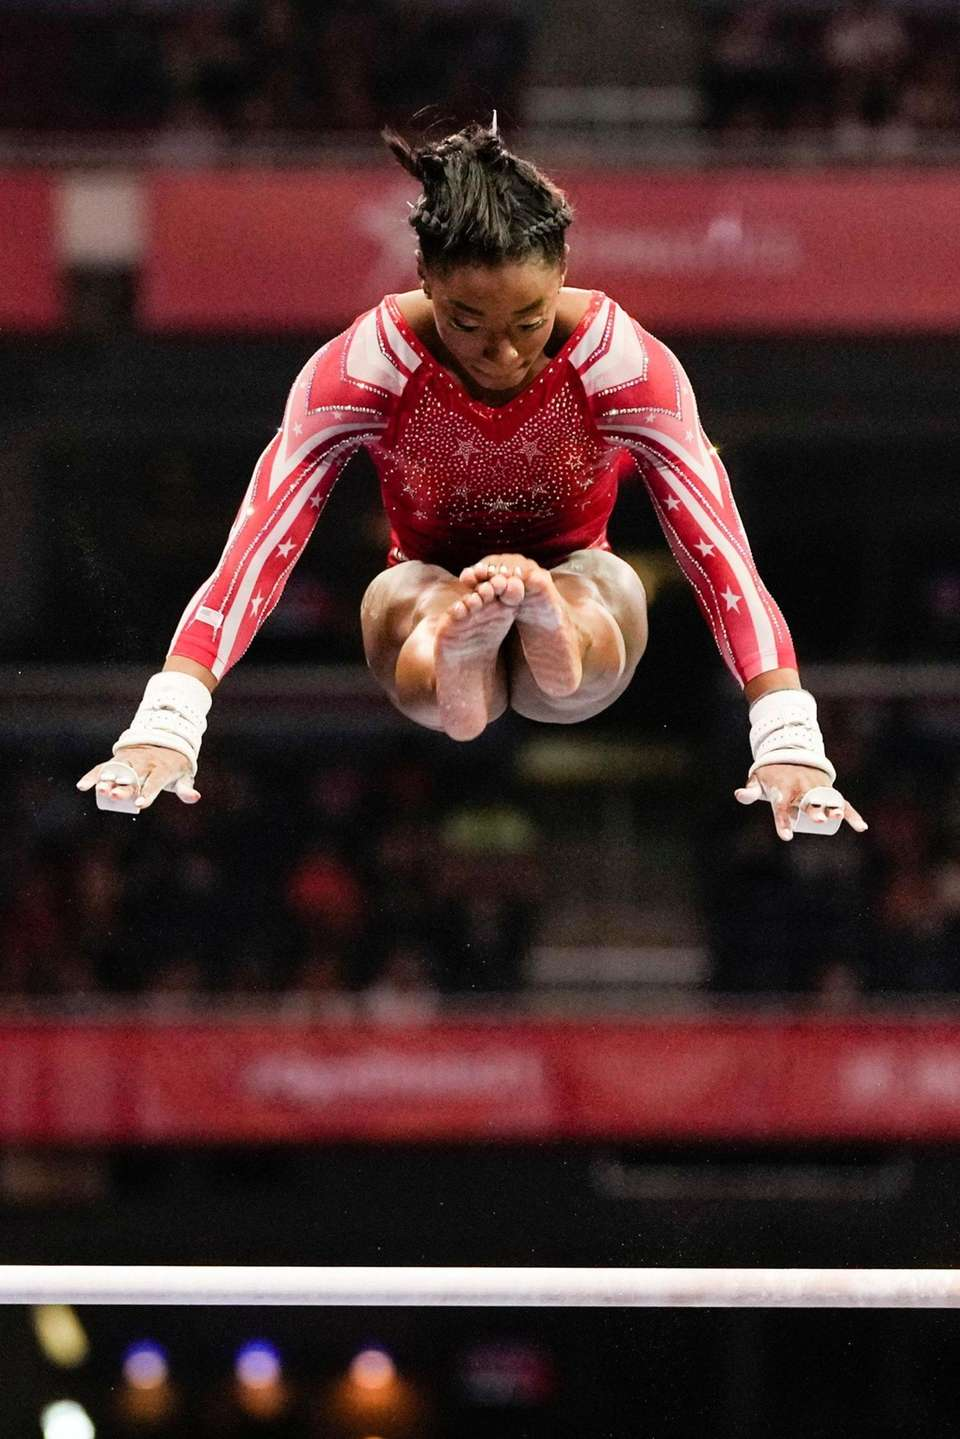 Simone Biles competes on the uneven bars during